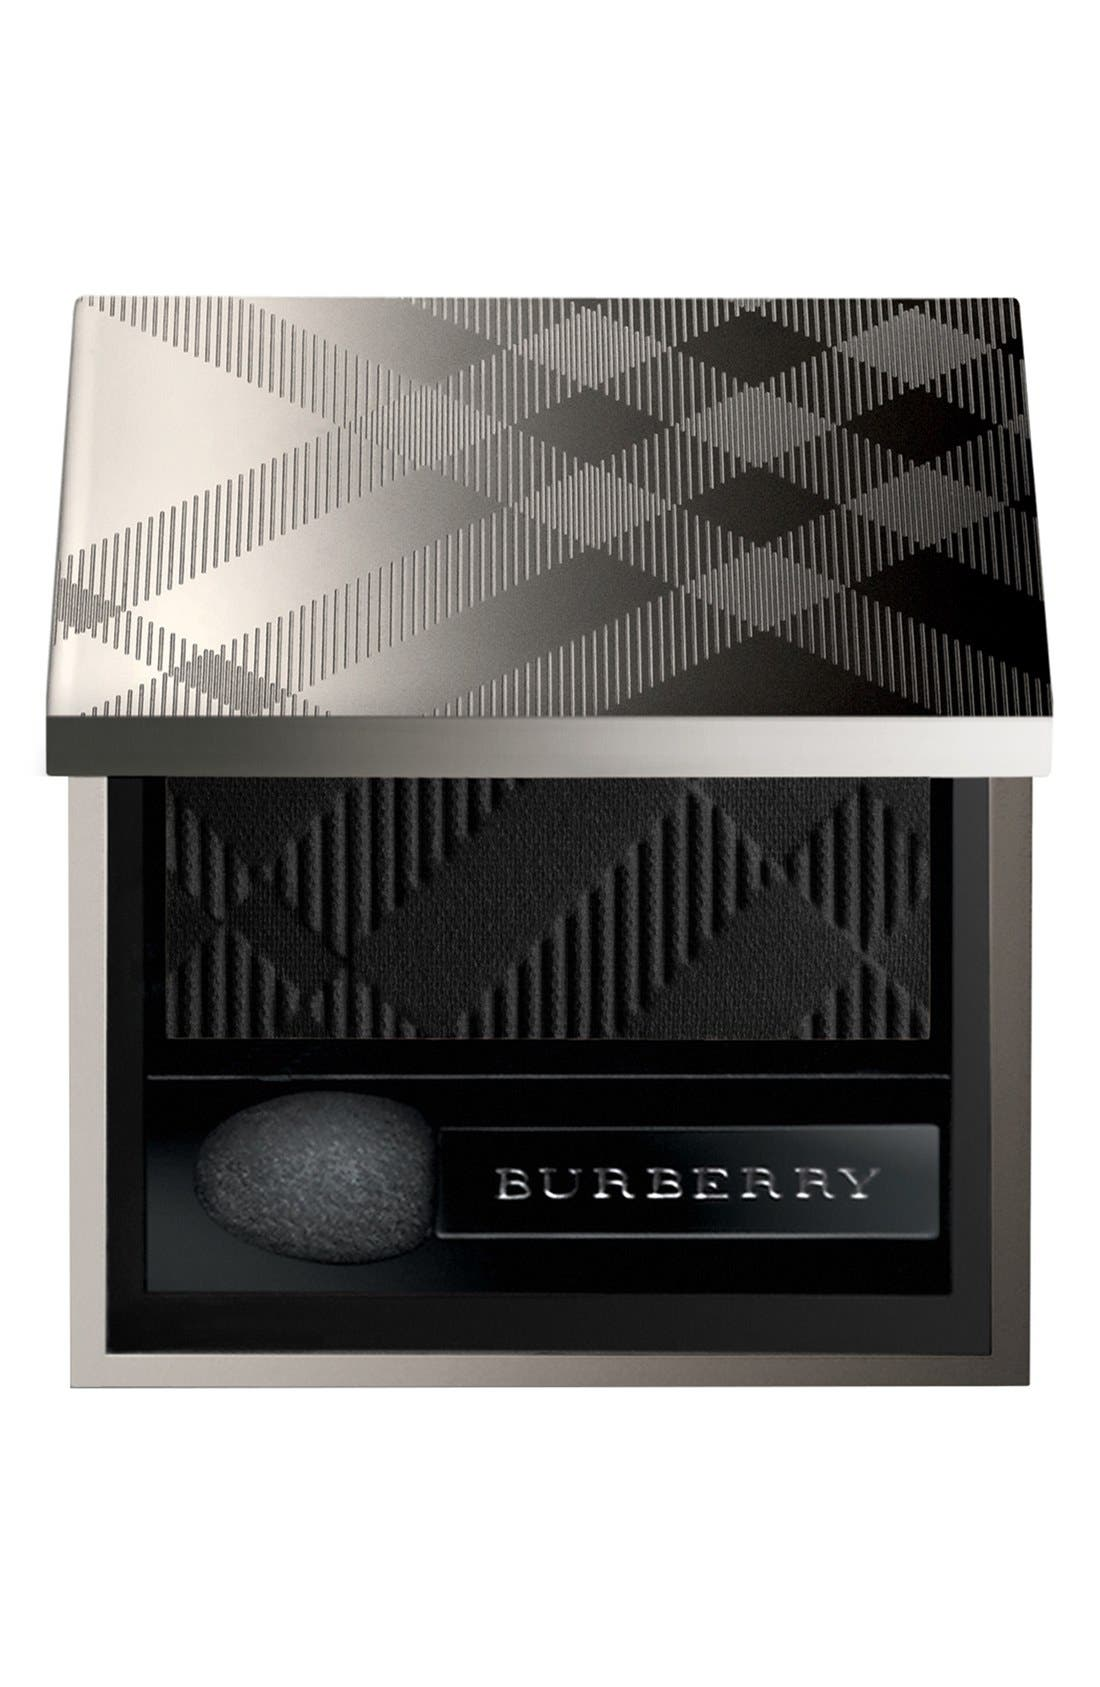 Burberry Beauty 'Eye Colour - Wet & Dry Silk' Eyeshadow